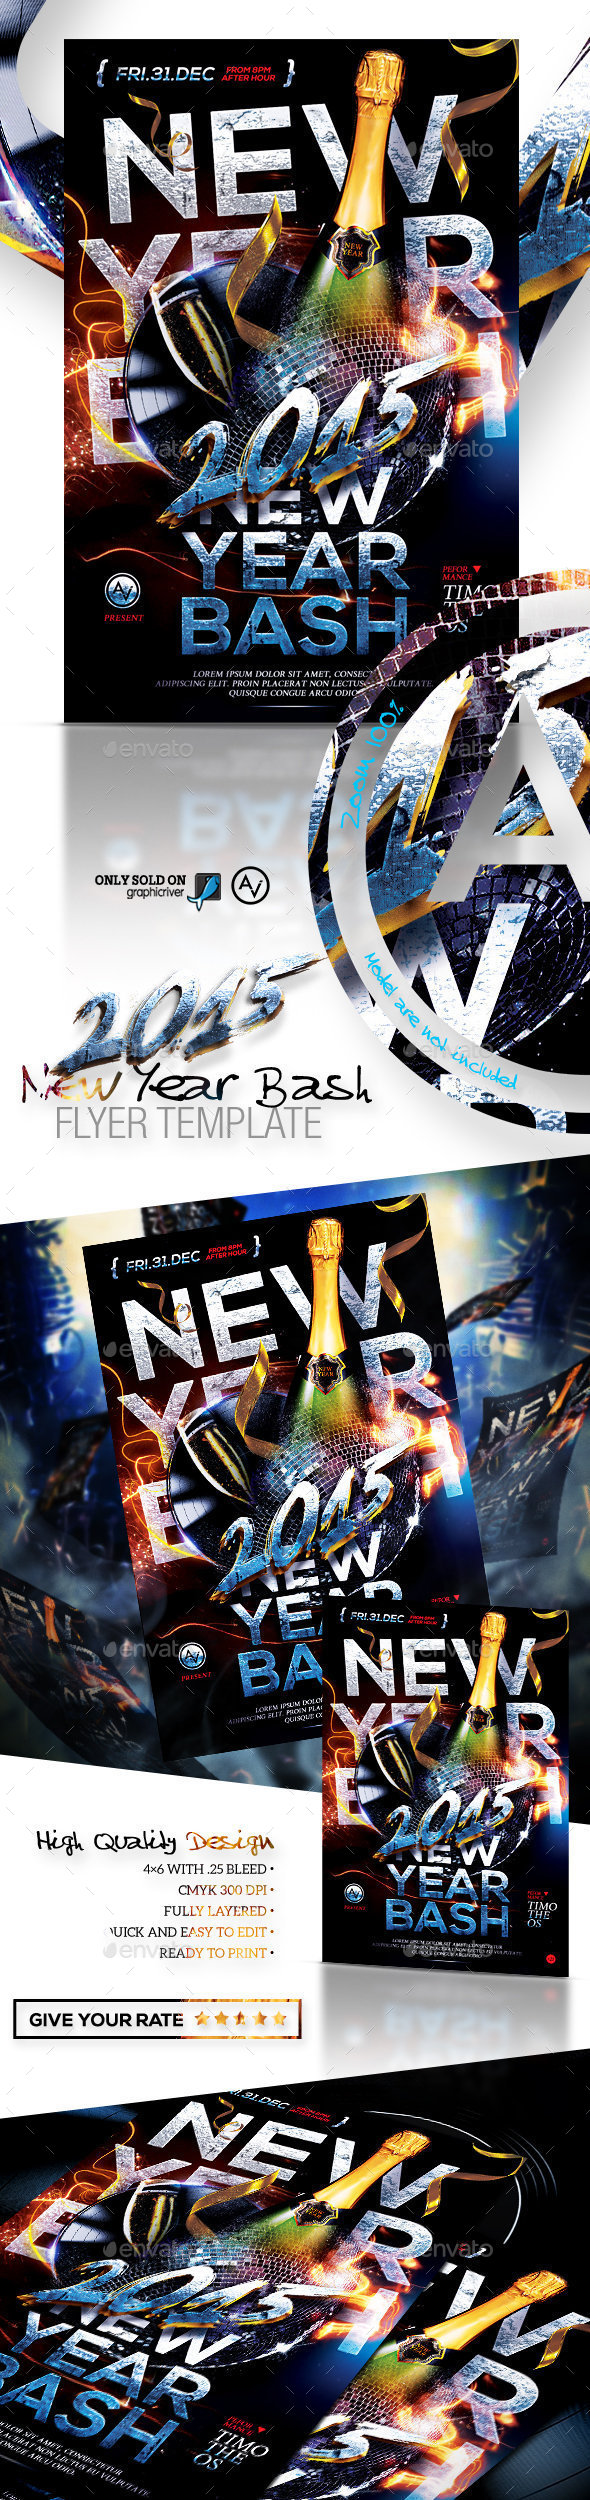 2015 New Year Bash Flyer Template - Clubs & Parties Events